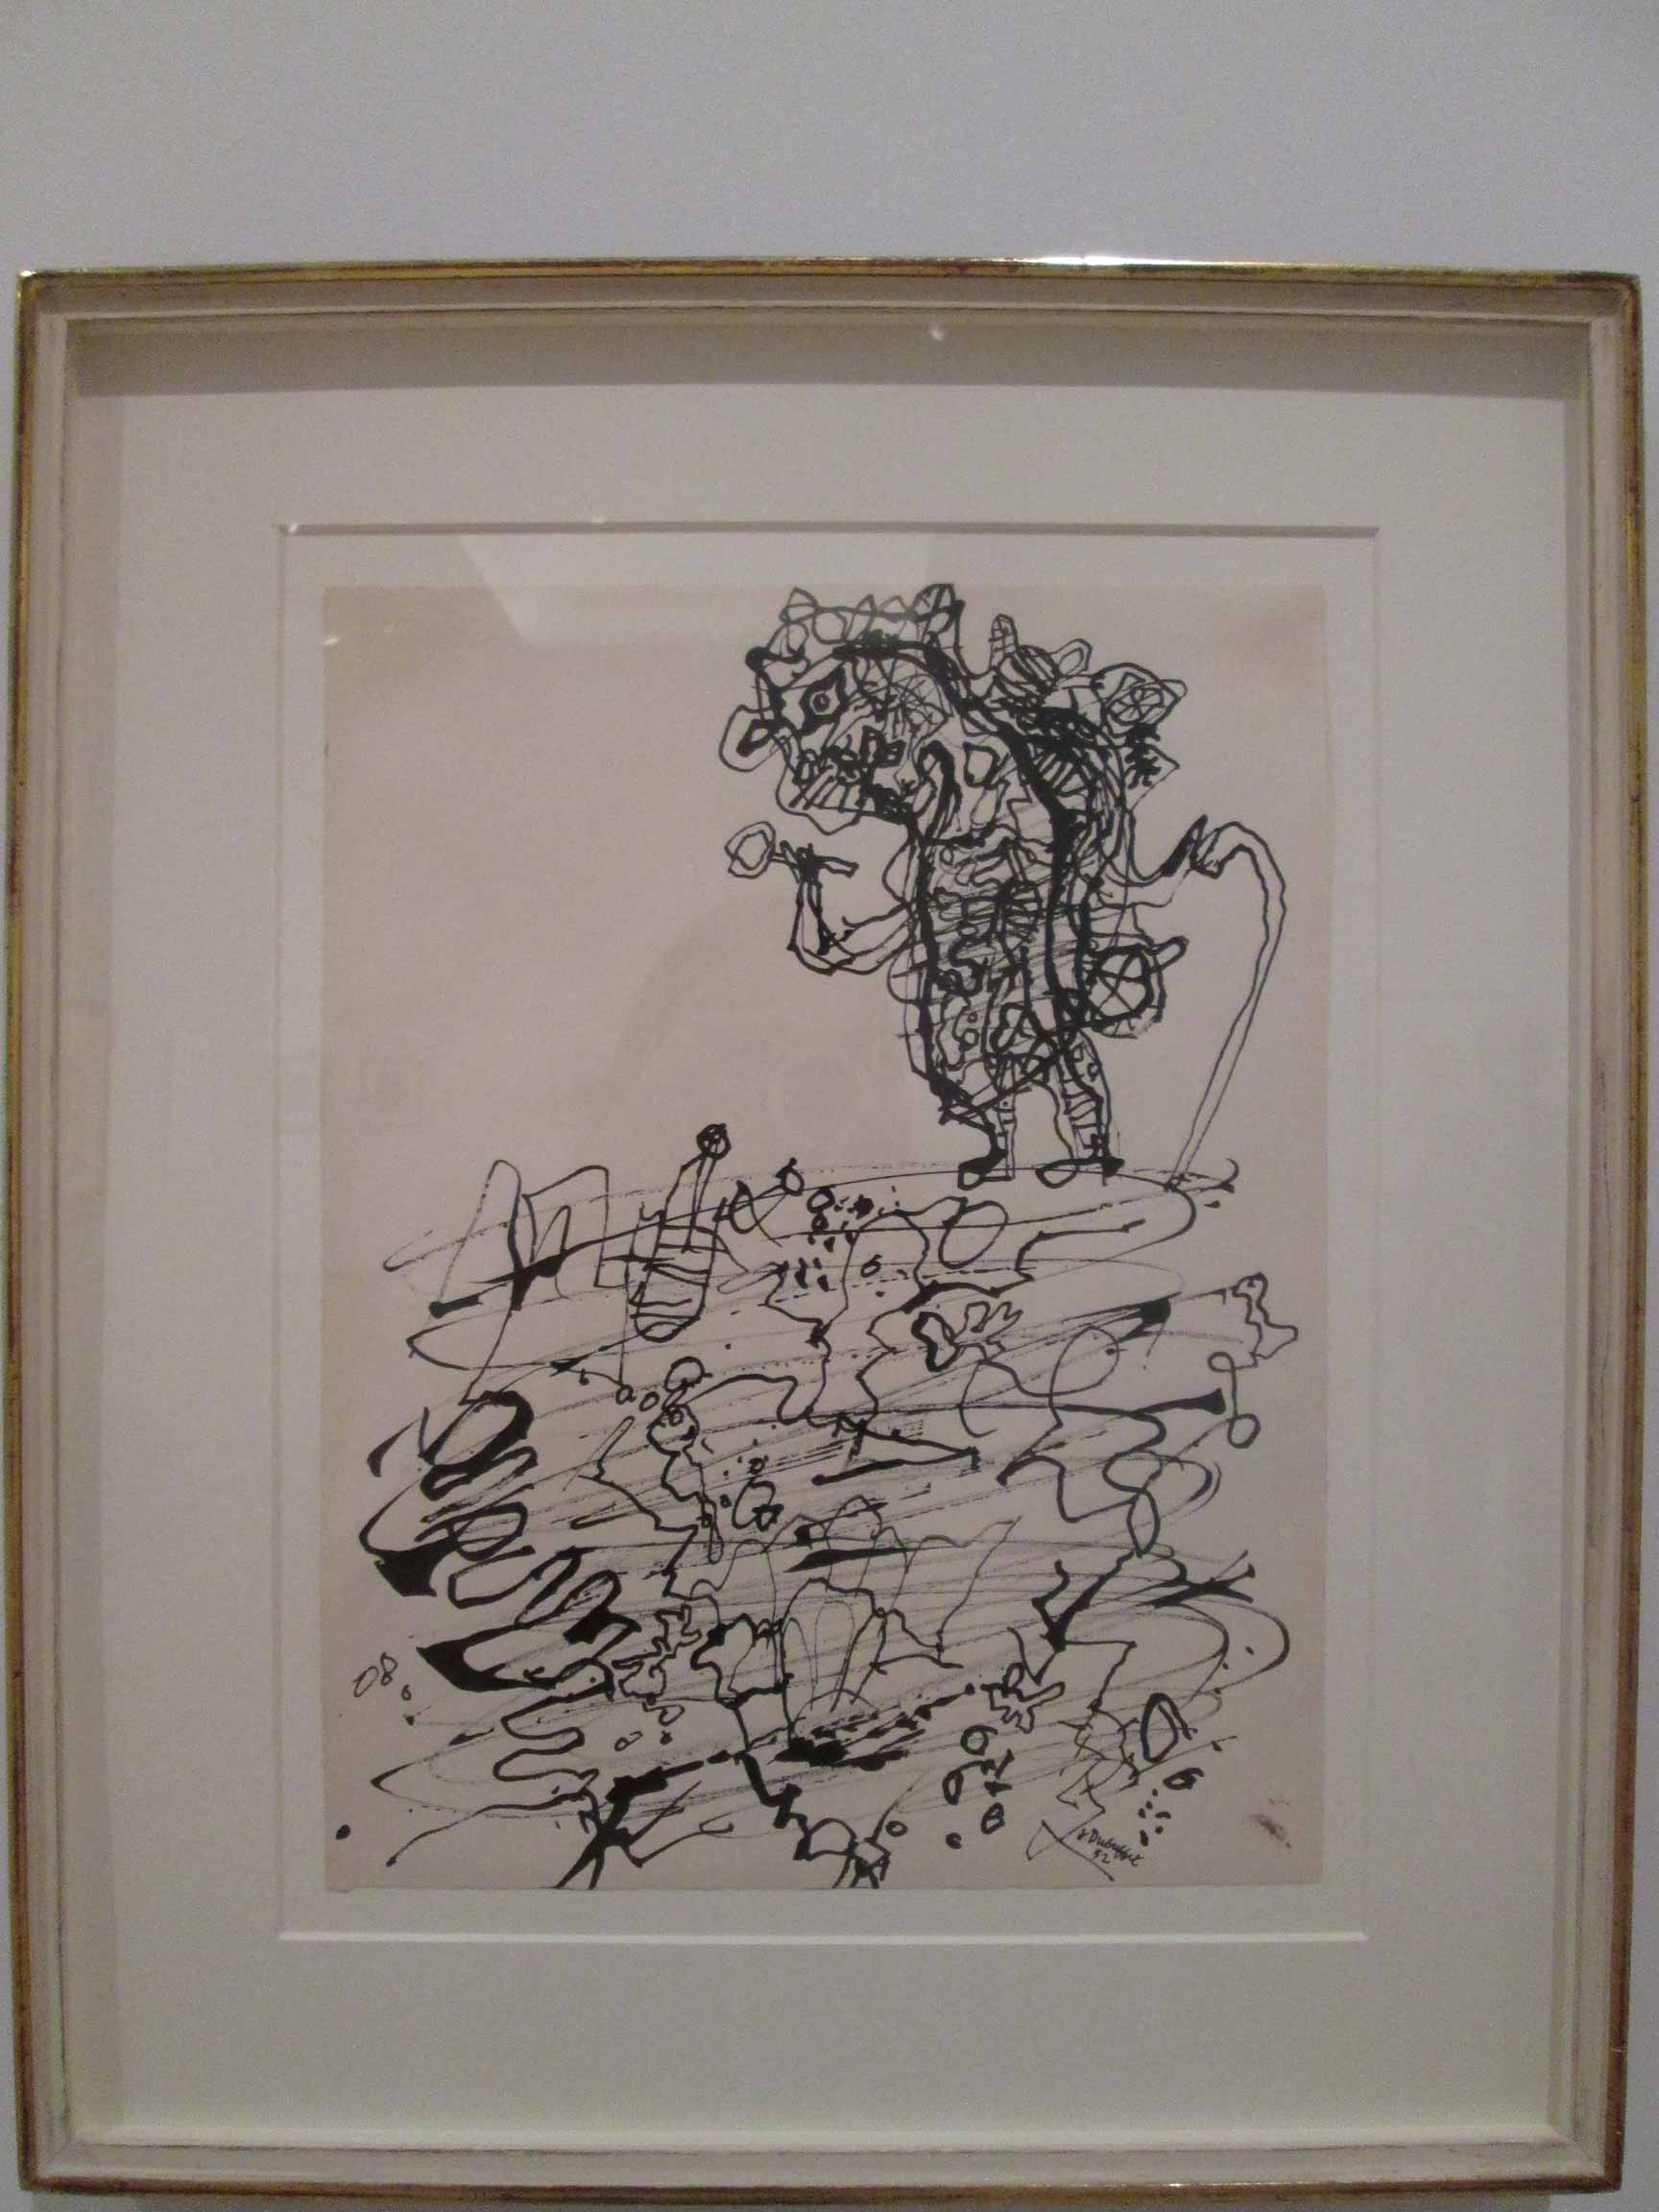 Jean-Dubuffet,-Géologue-à-la-loupe-et-à-la-canne-(Geologist-with-Magnifying-Glass-and-Cane),-reed-pen-and-india-ink,-1952